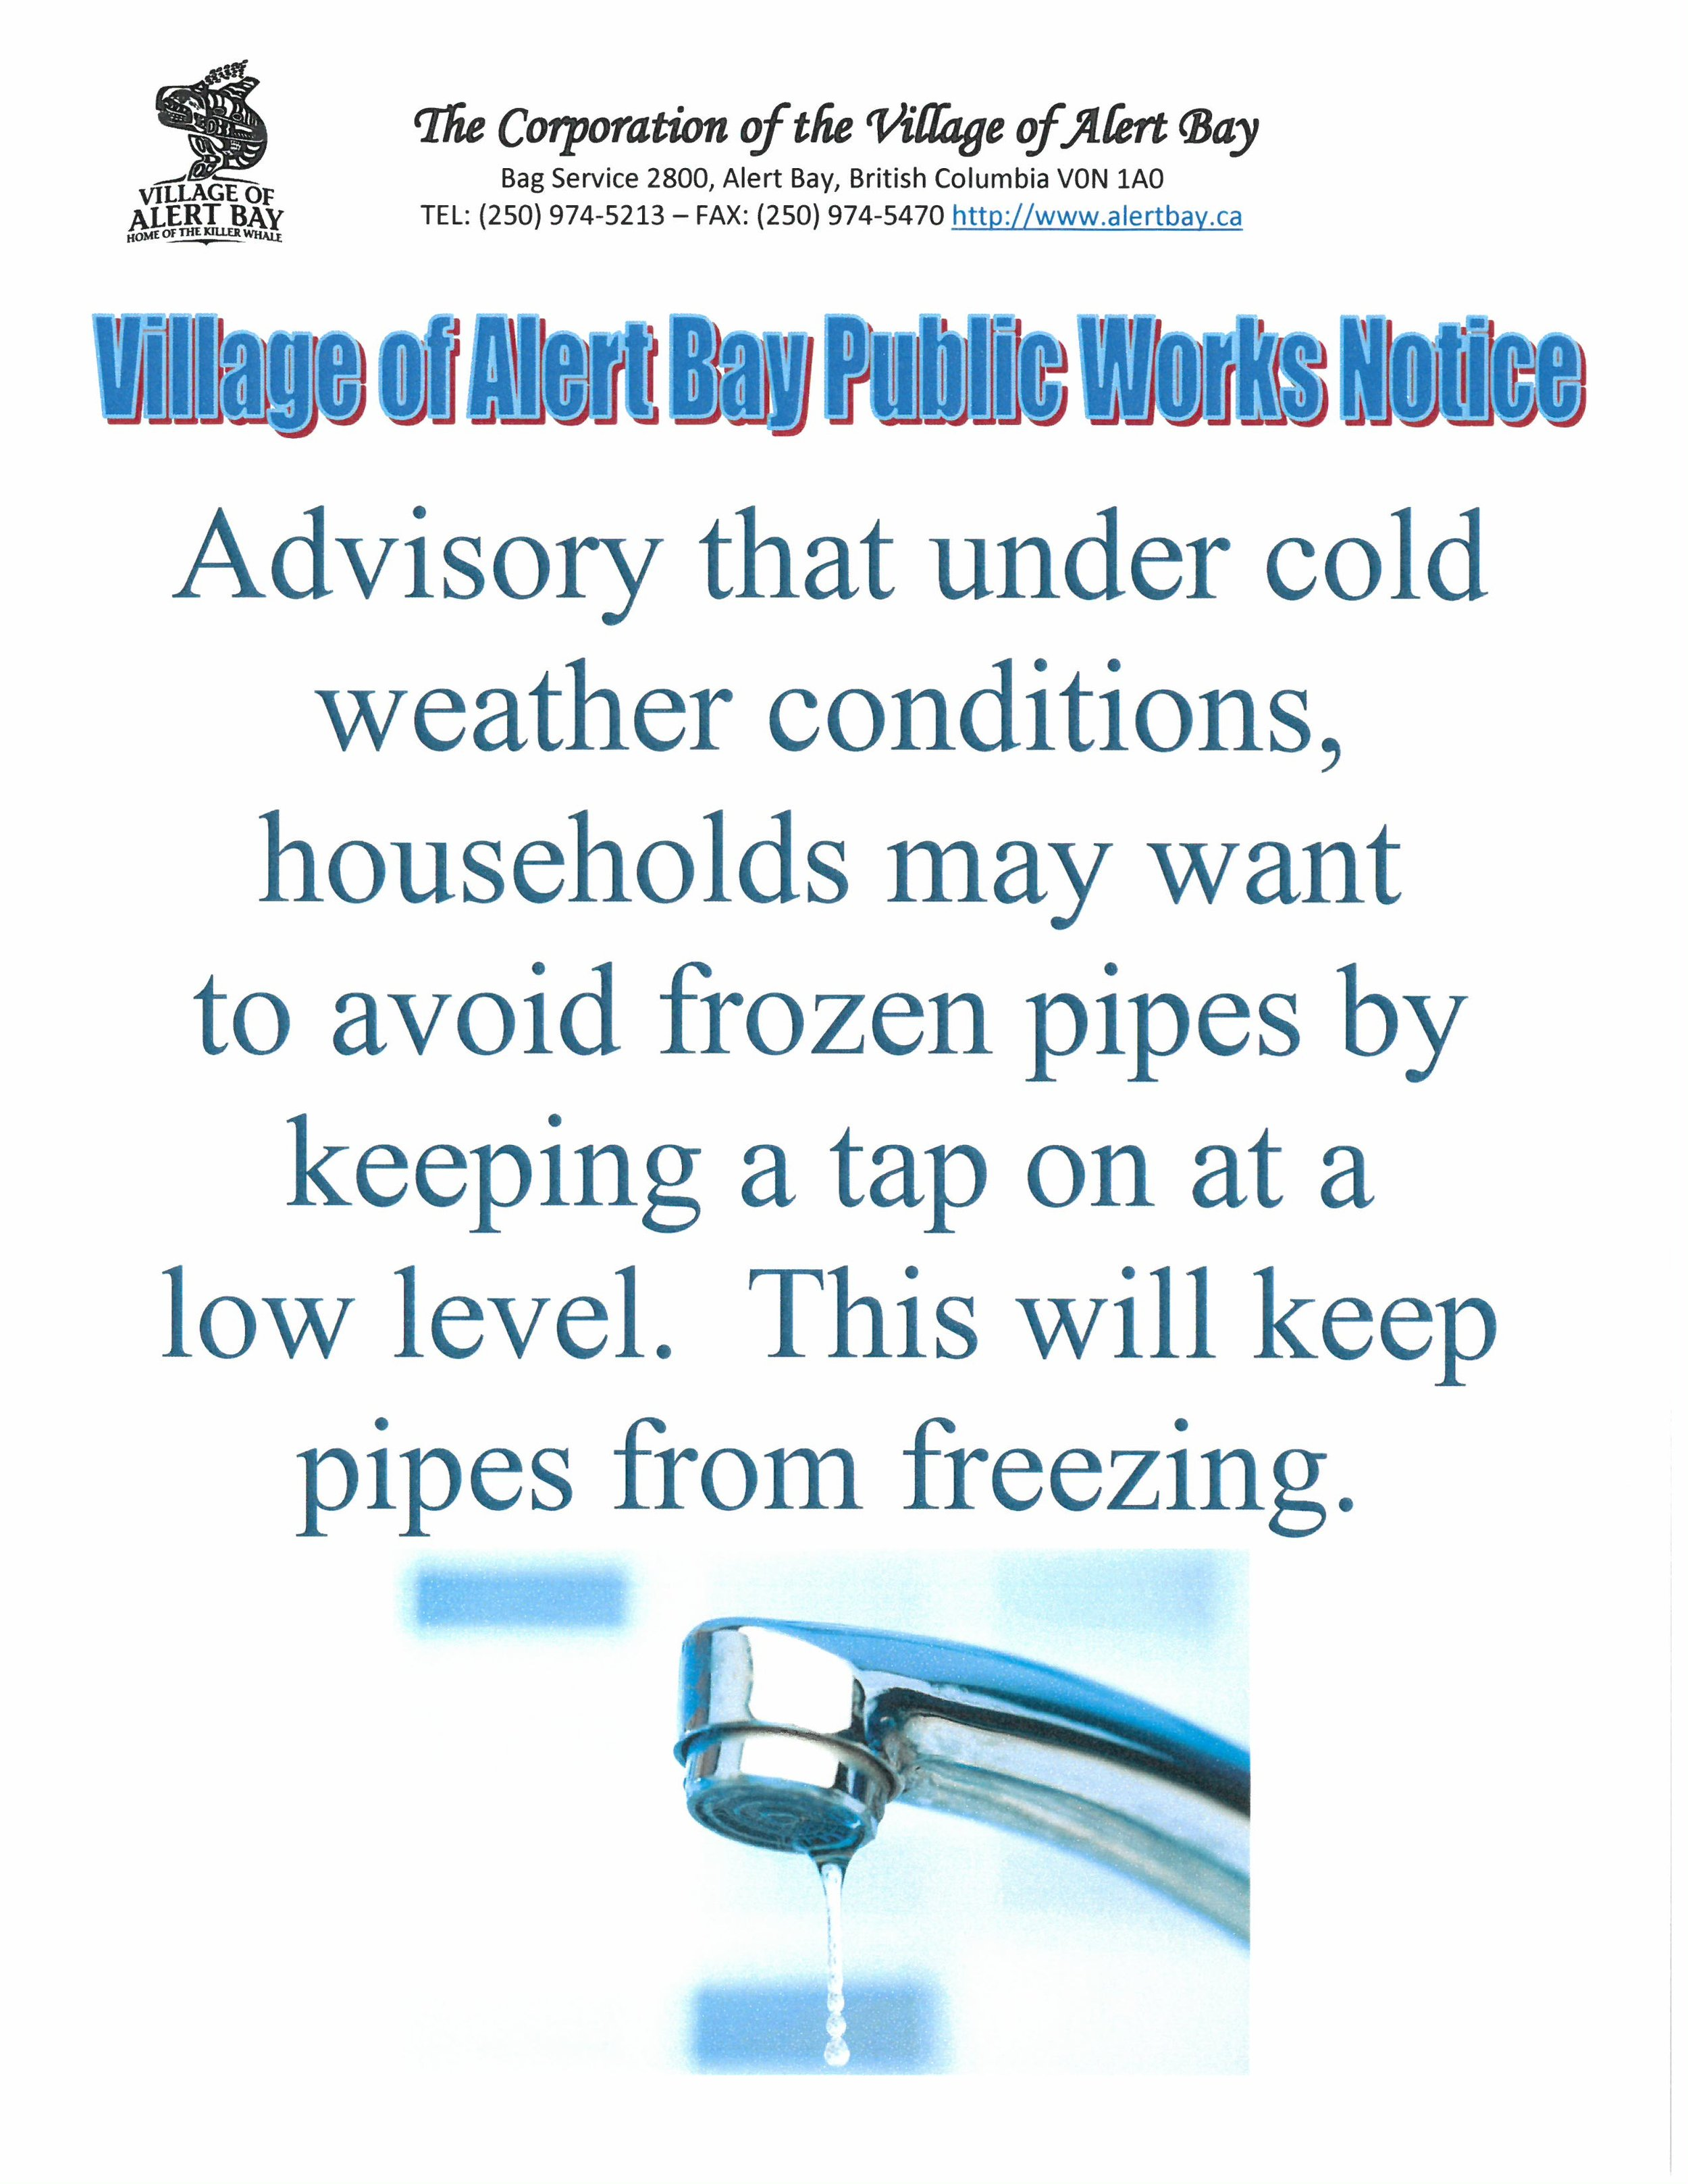 Publice Works Poster February 11, 2019 Tap Water.jpg